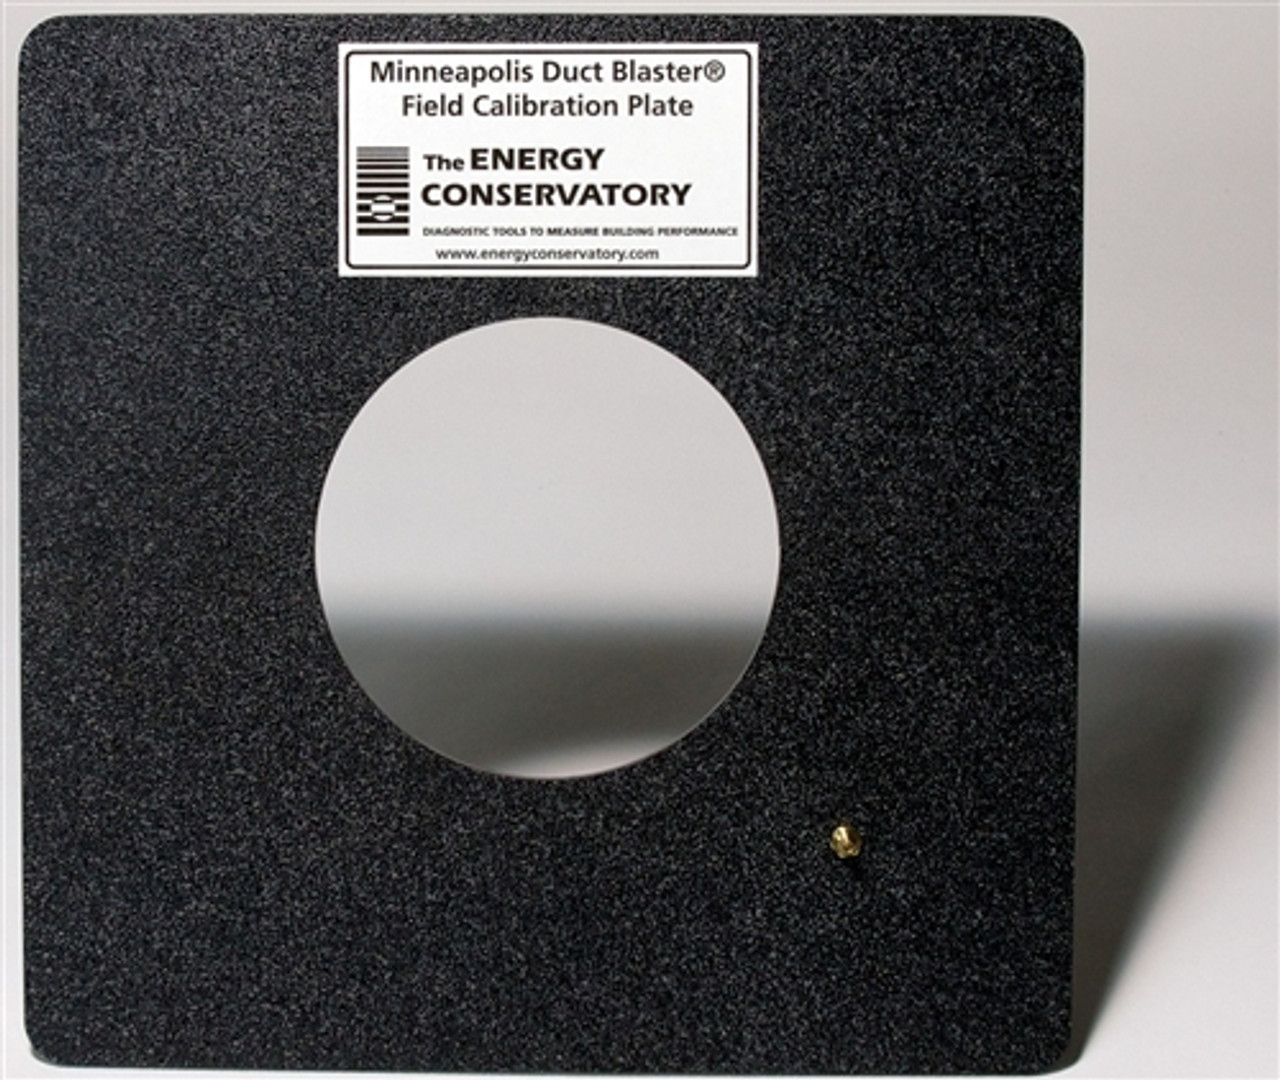 The Energy Conservatory Minneapolis Duct Blaster Field Calibration Plate DUCTCALPLT